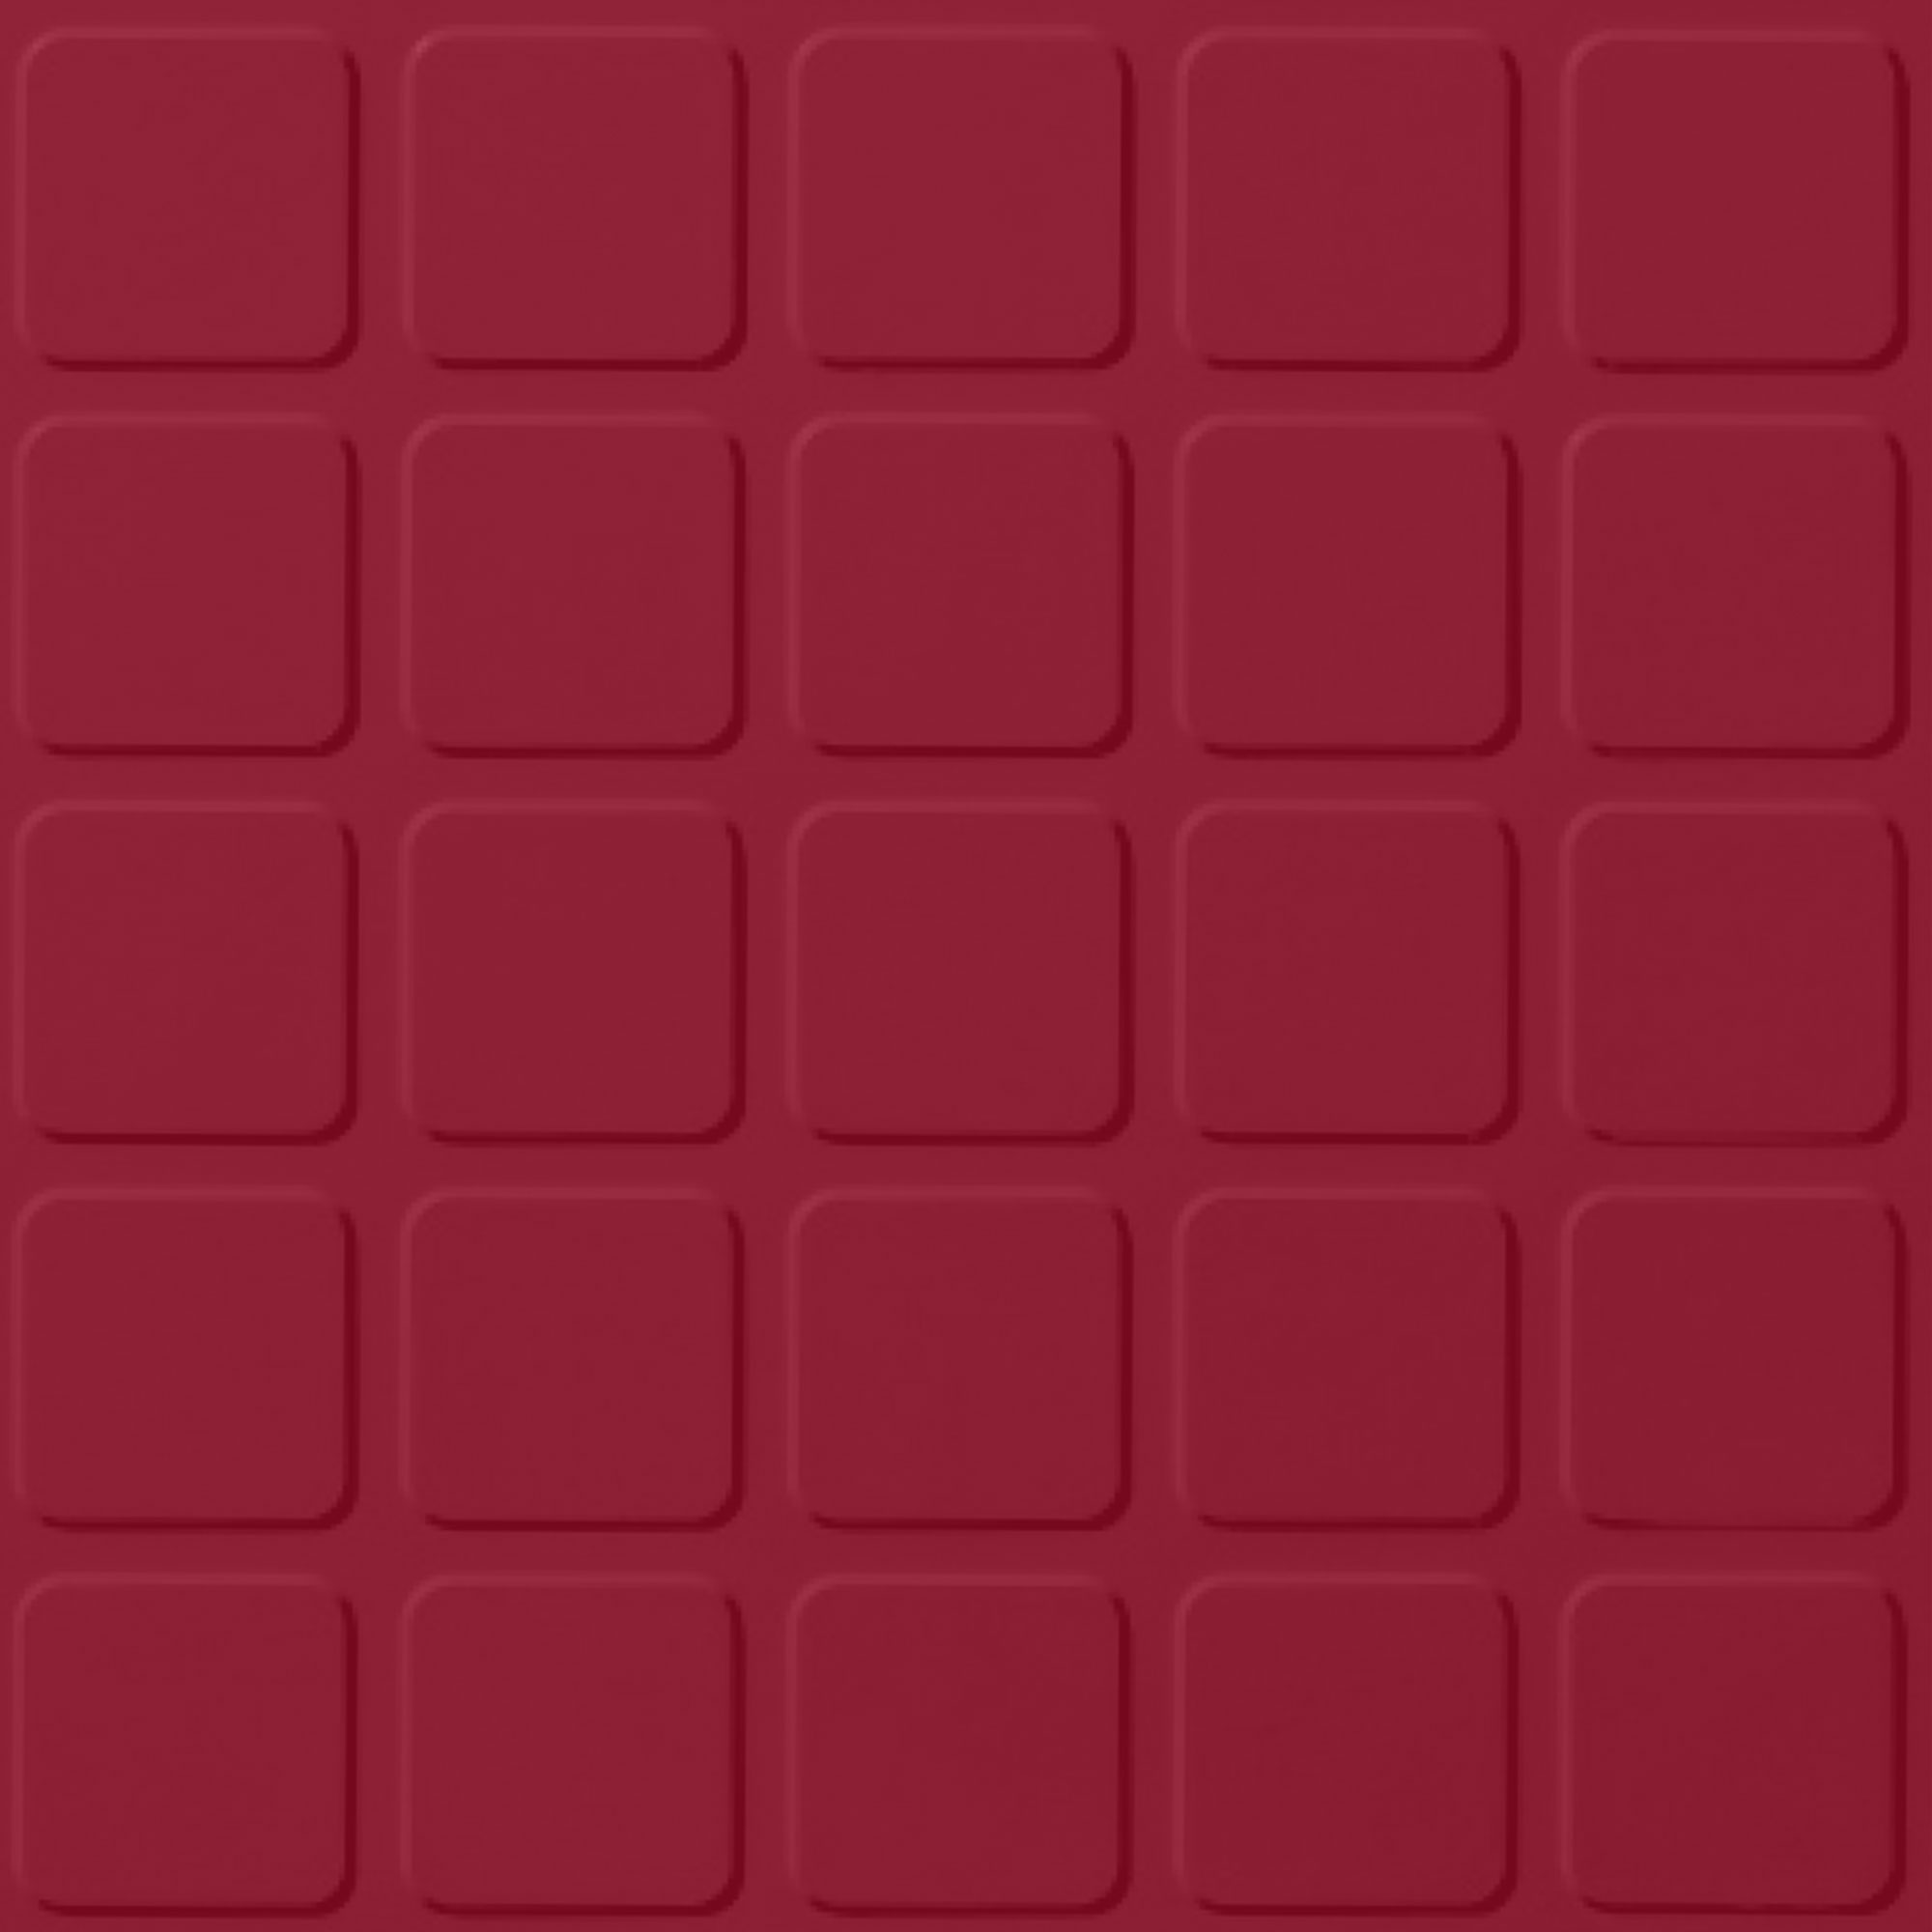 Roppe Rubber Design Treads - Raised Square Design Red 186